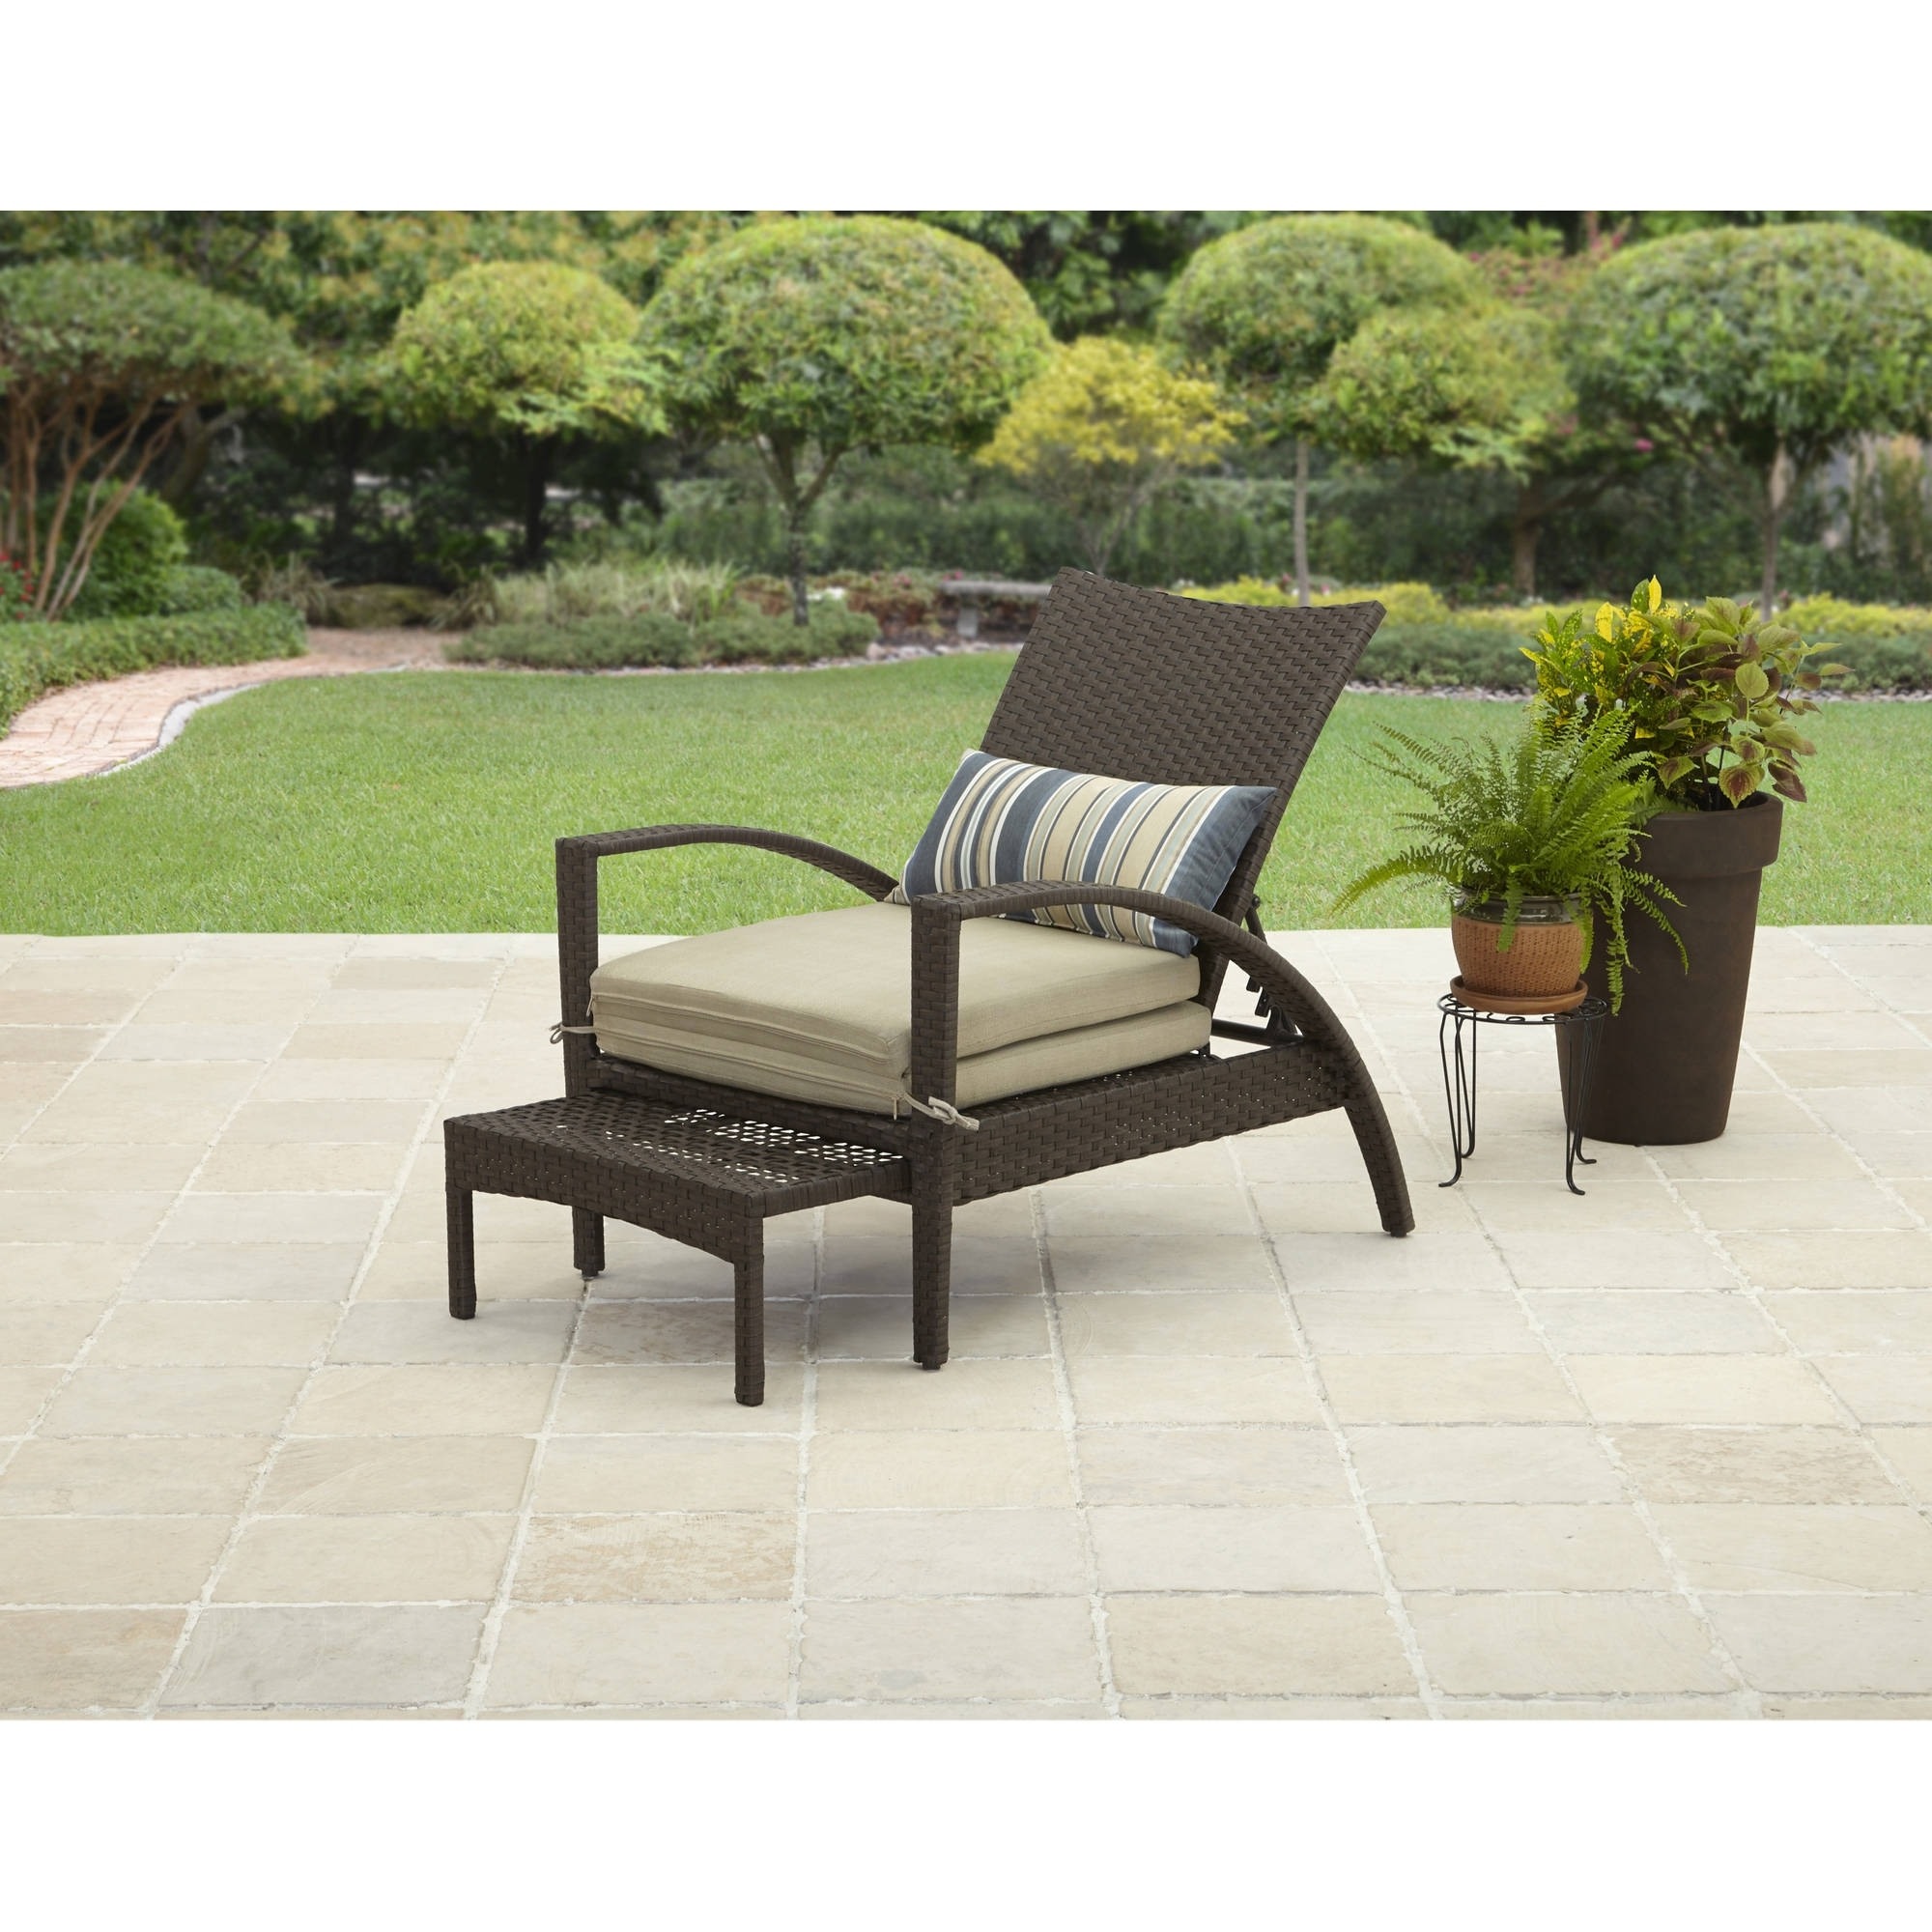 Fashionable Outdoor Chaise Lounge Chairs With Canopy Within Outdoor : White Outdoor Chaise Lounge Lounge Couch Sun Lounger (View 12 of 15)